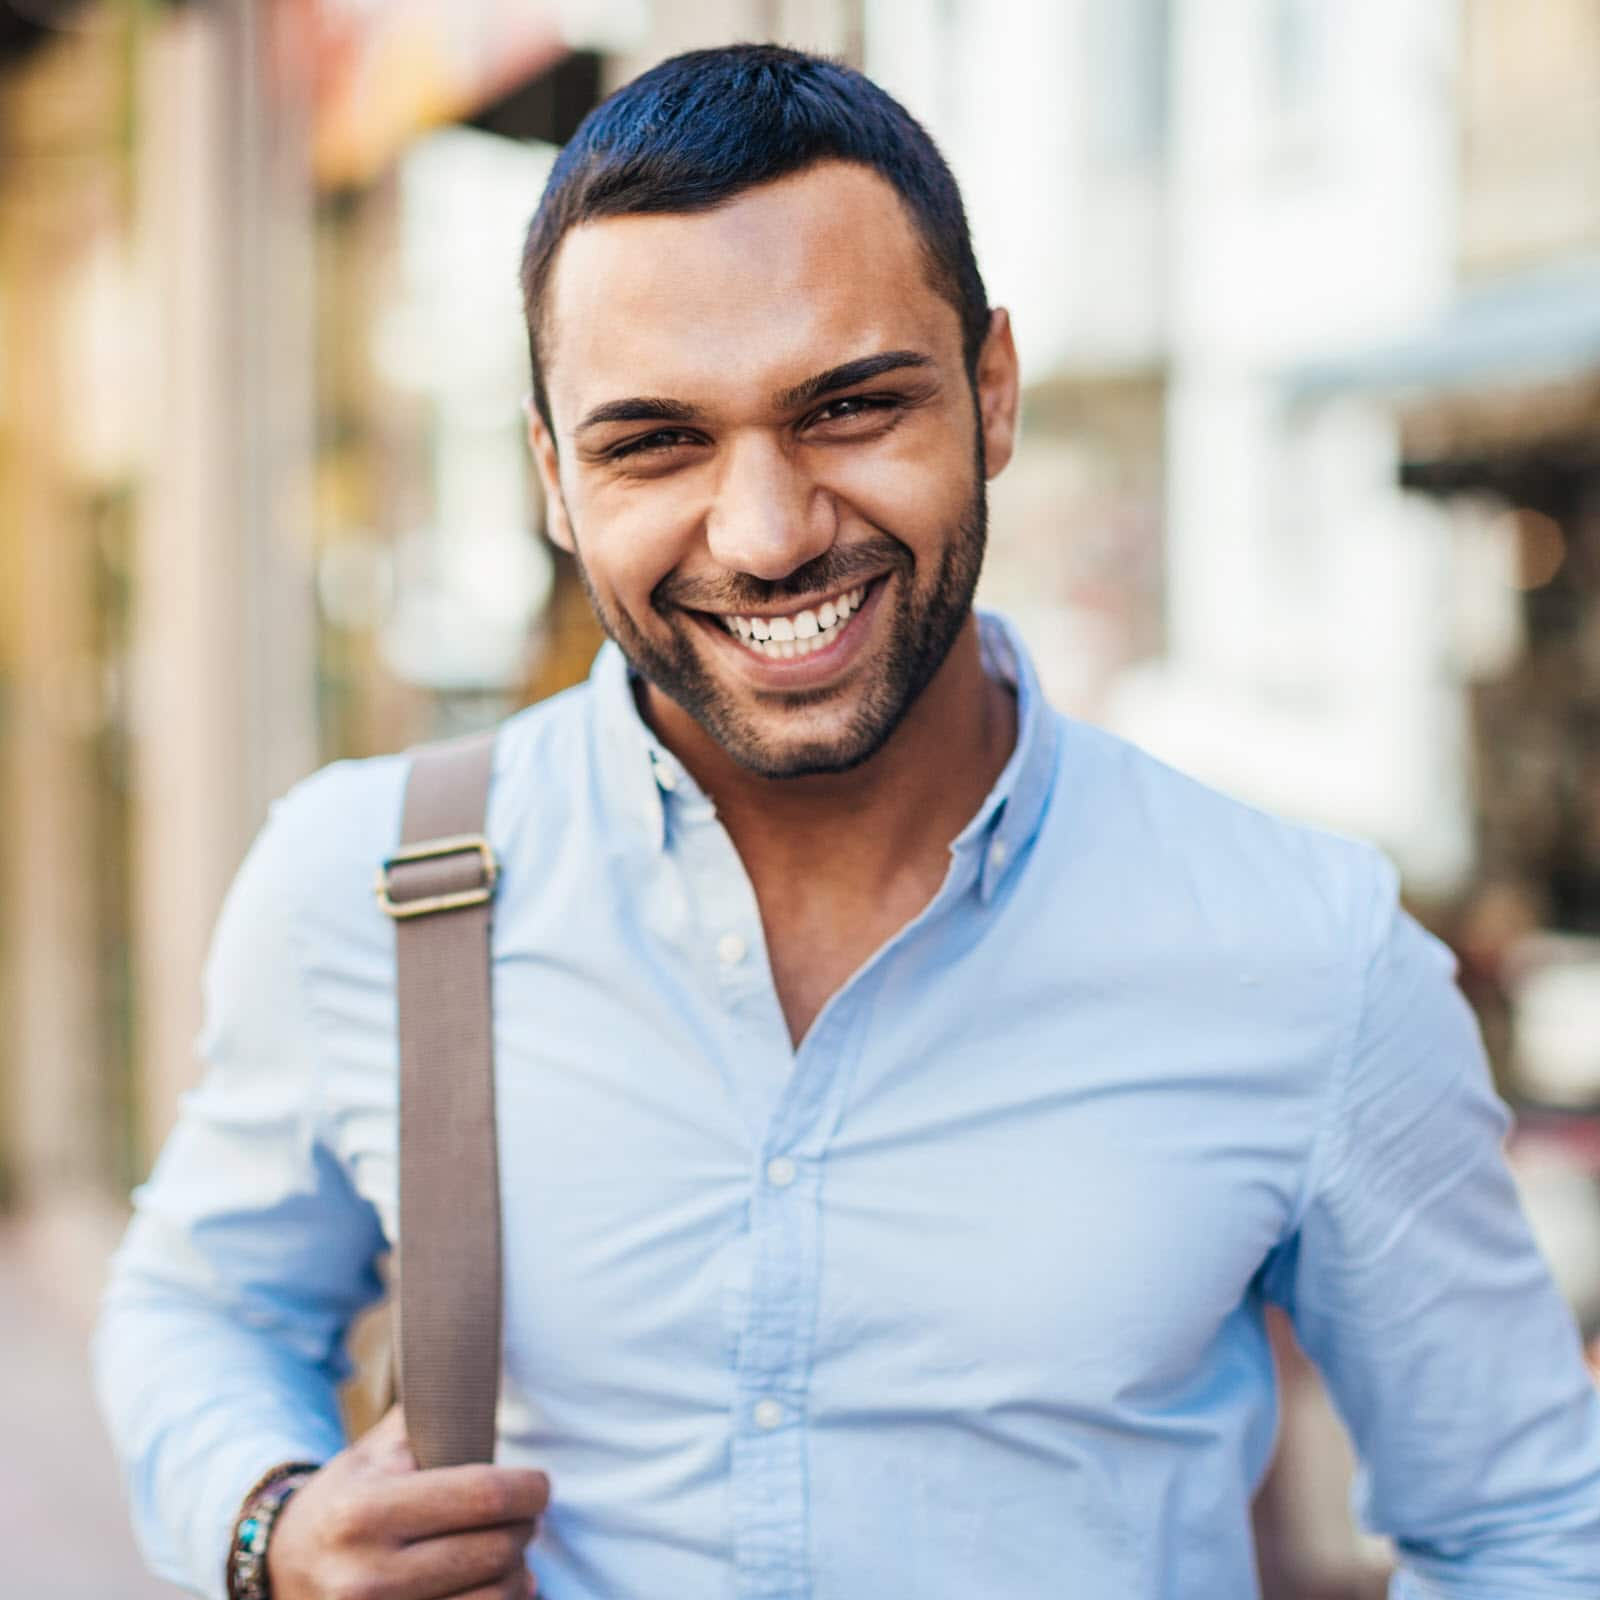 A youthful man carrying a shoulder bag smiles broadly